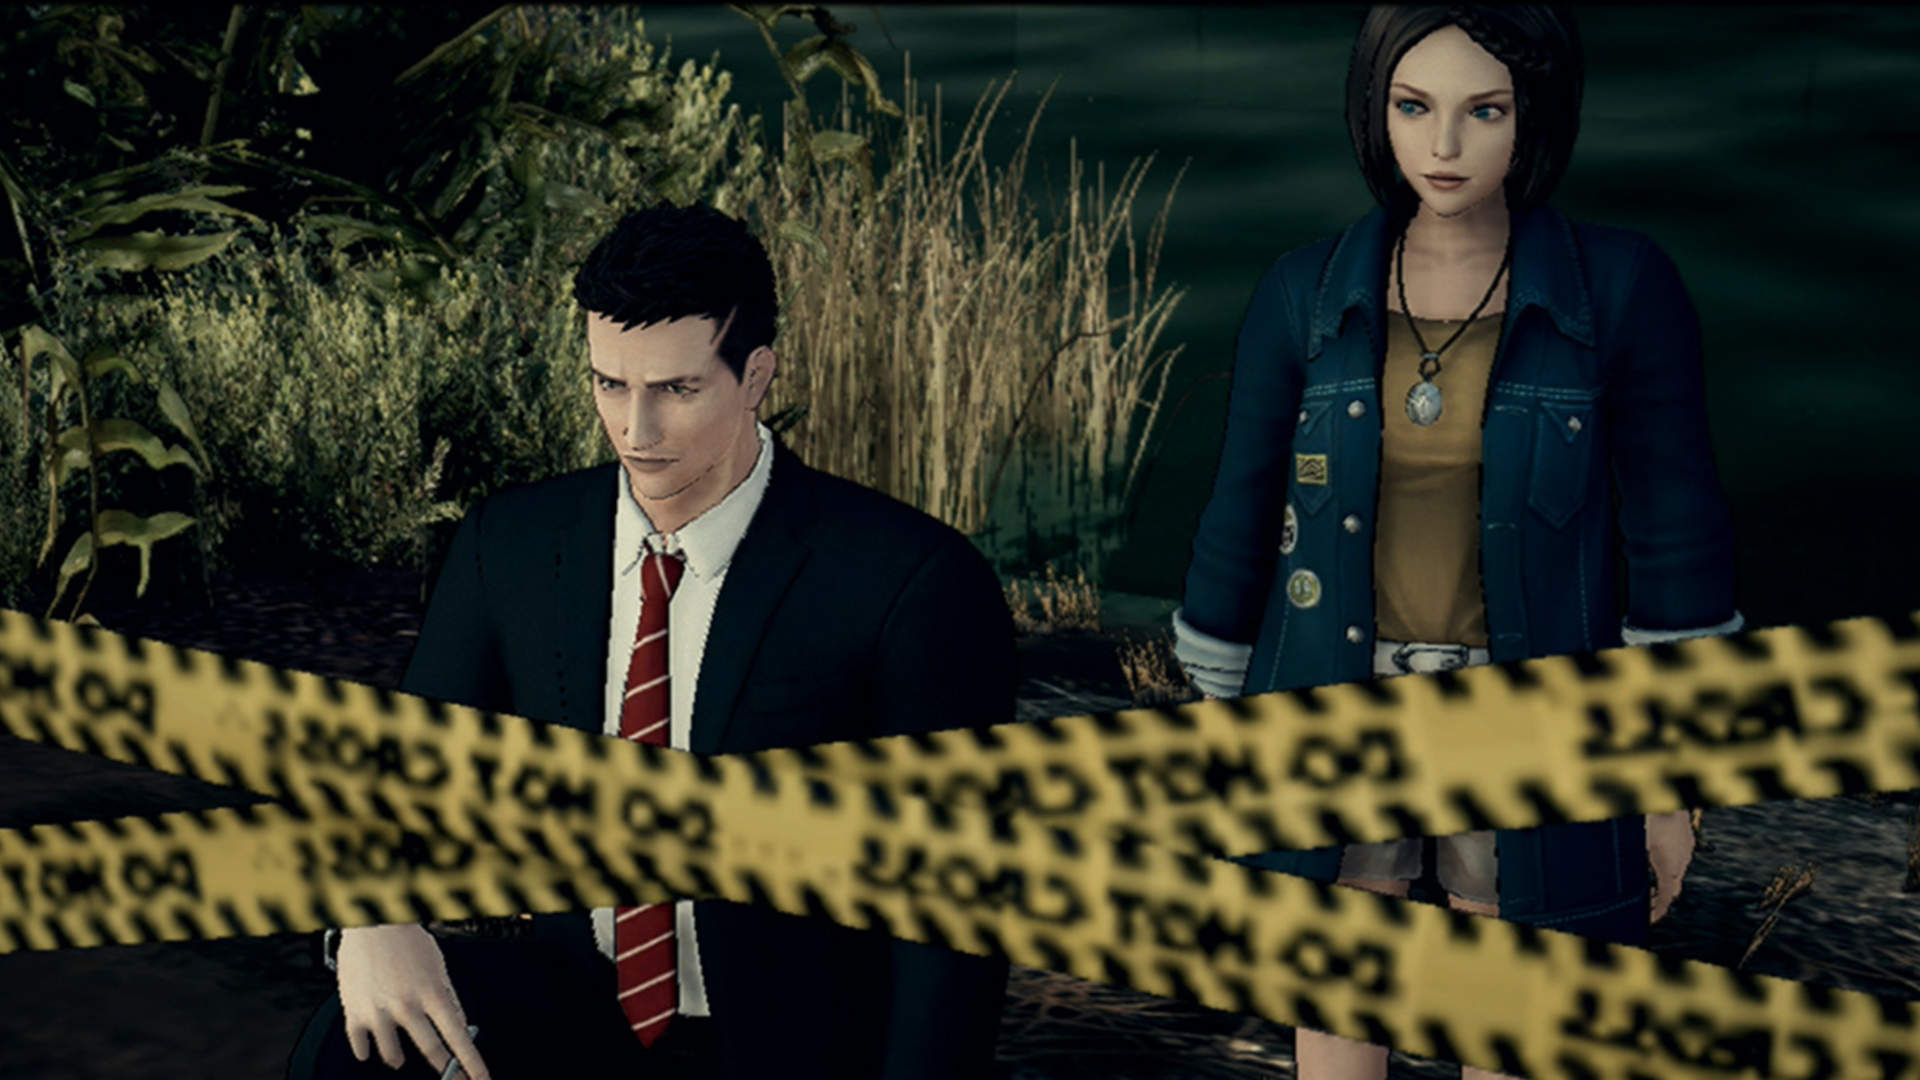 Deadly Premonition 2 A Blessing in Disguise Releases in July 1920x1080